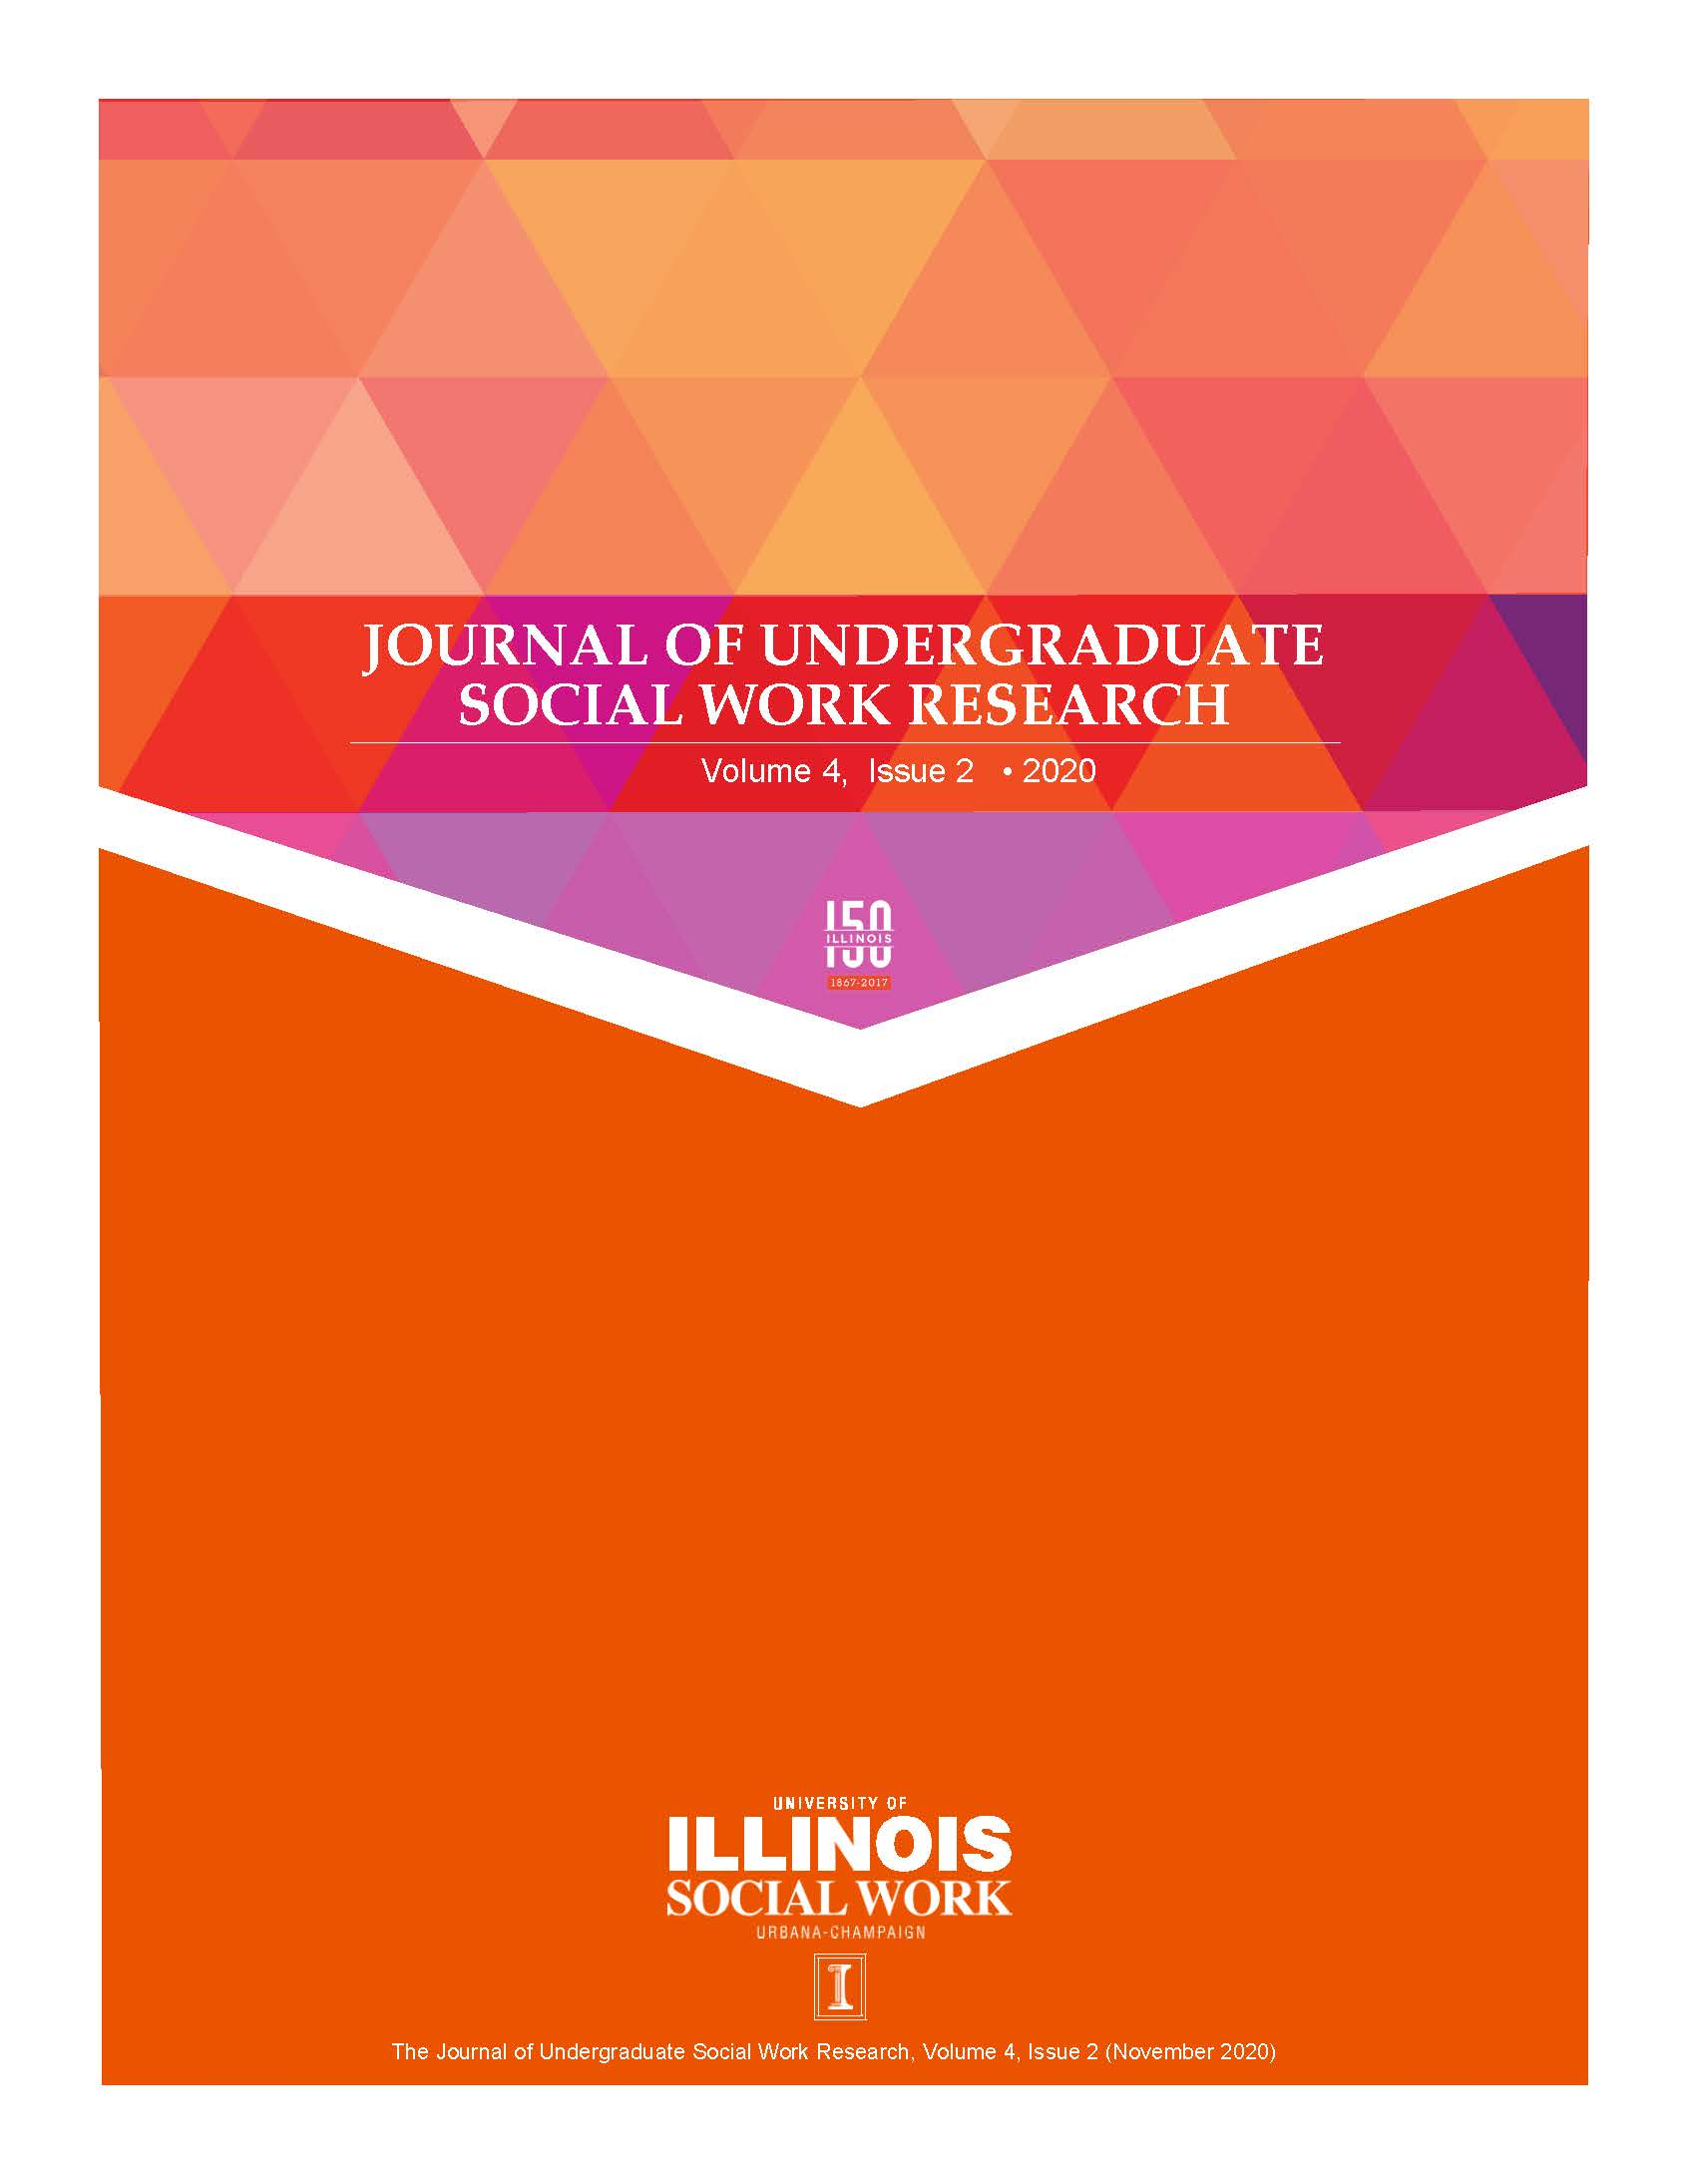 Journal of Undergraduate Social Work Research Vol 4, no. 2 cover with white font on orange background